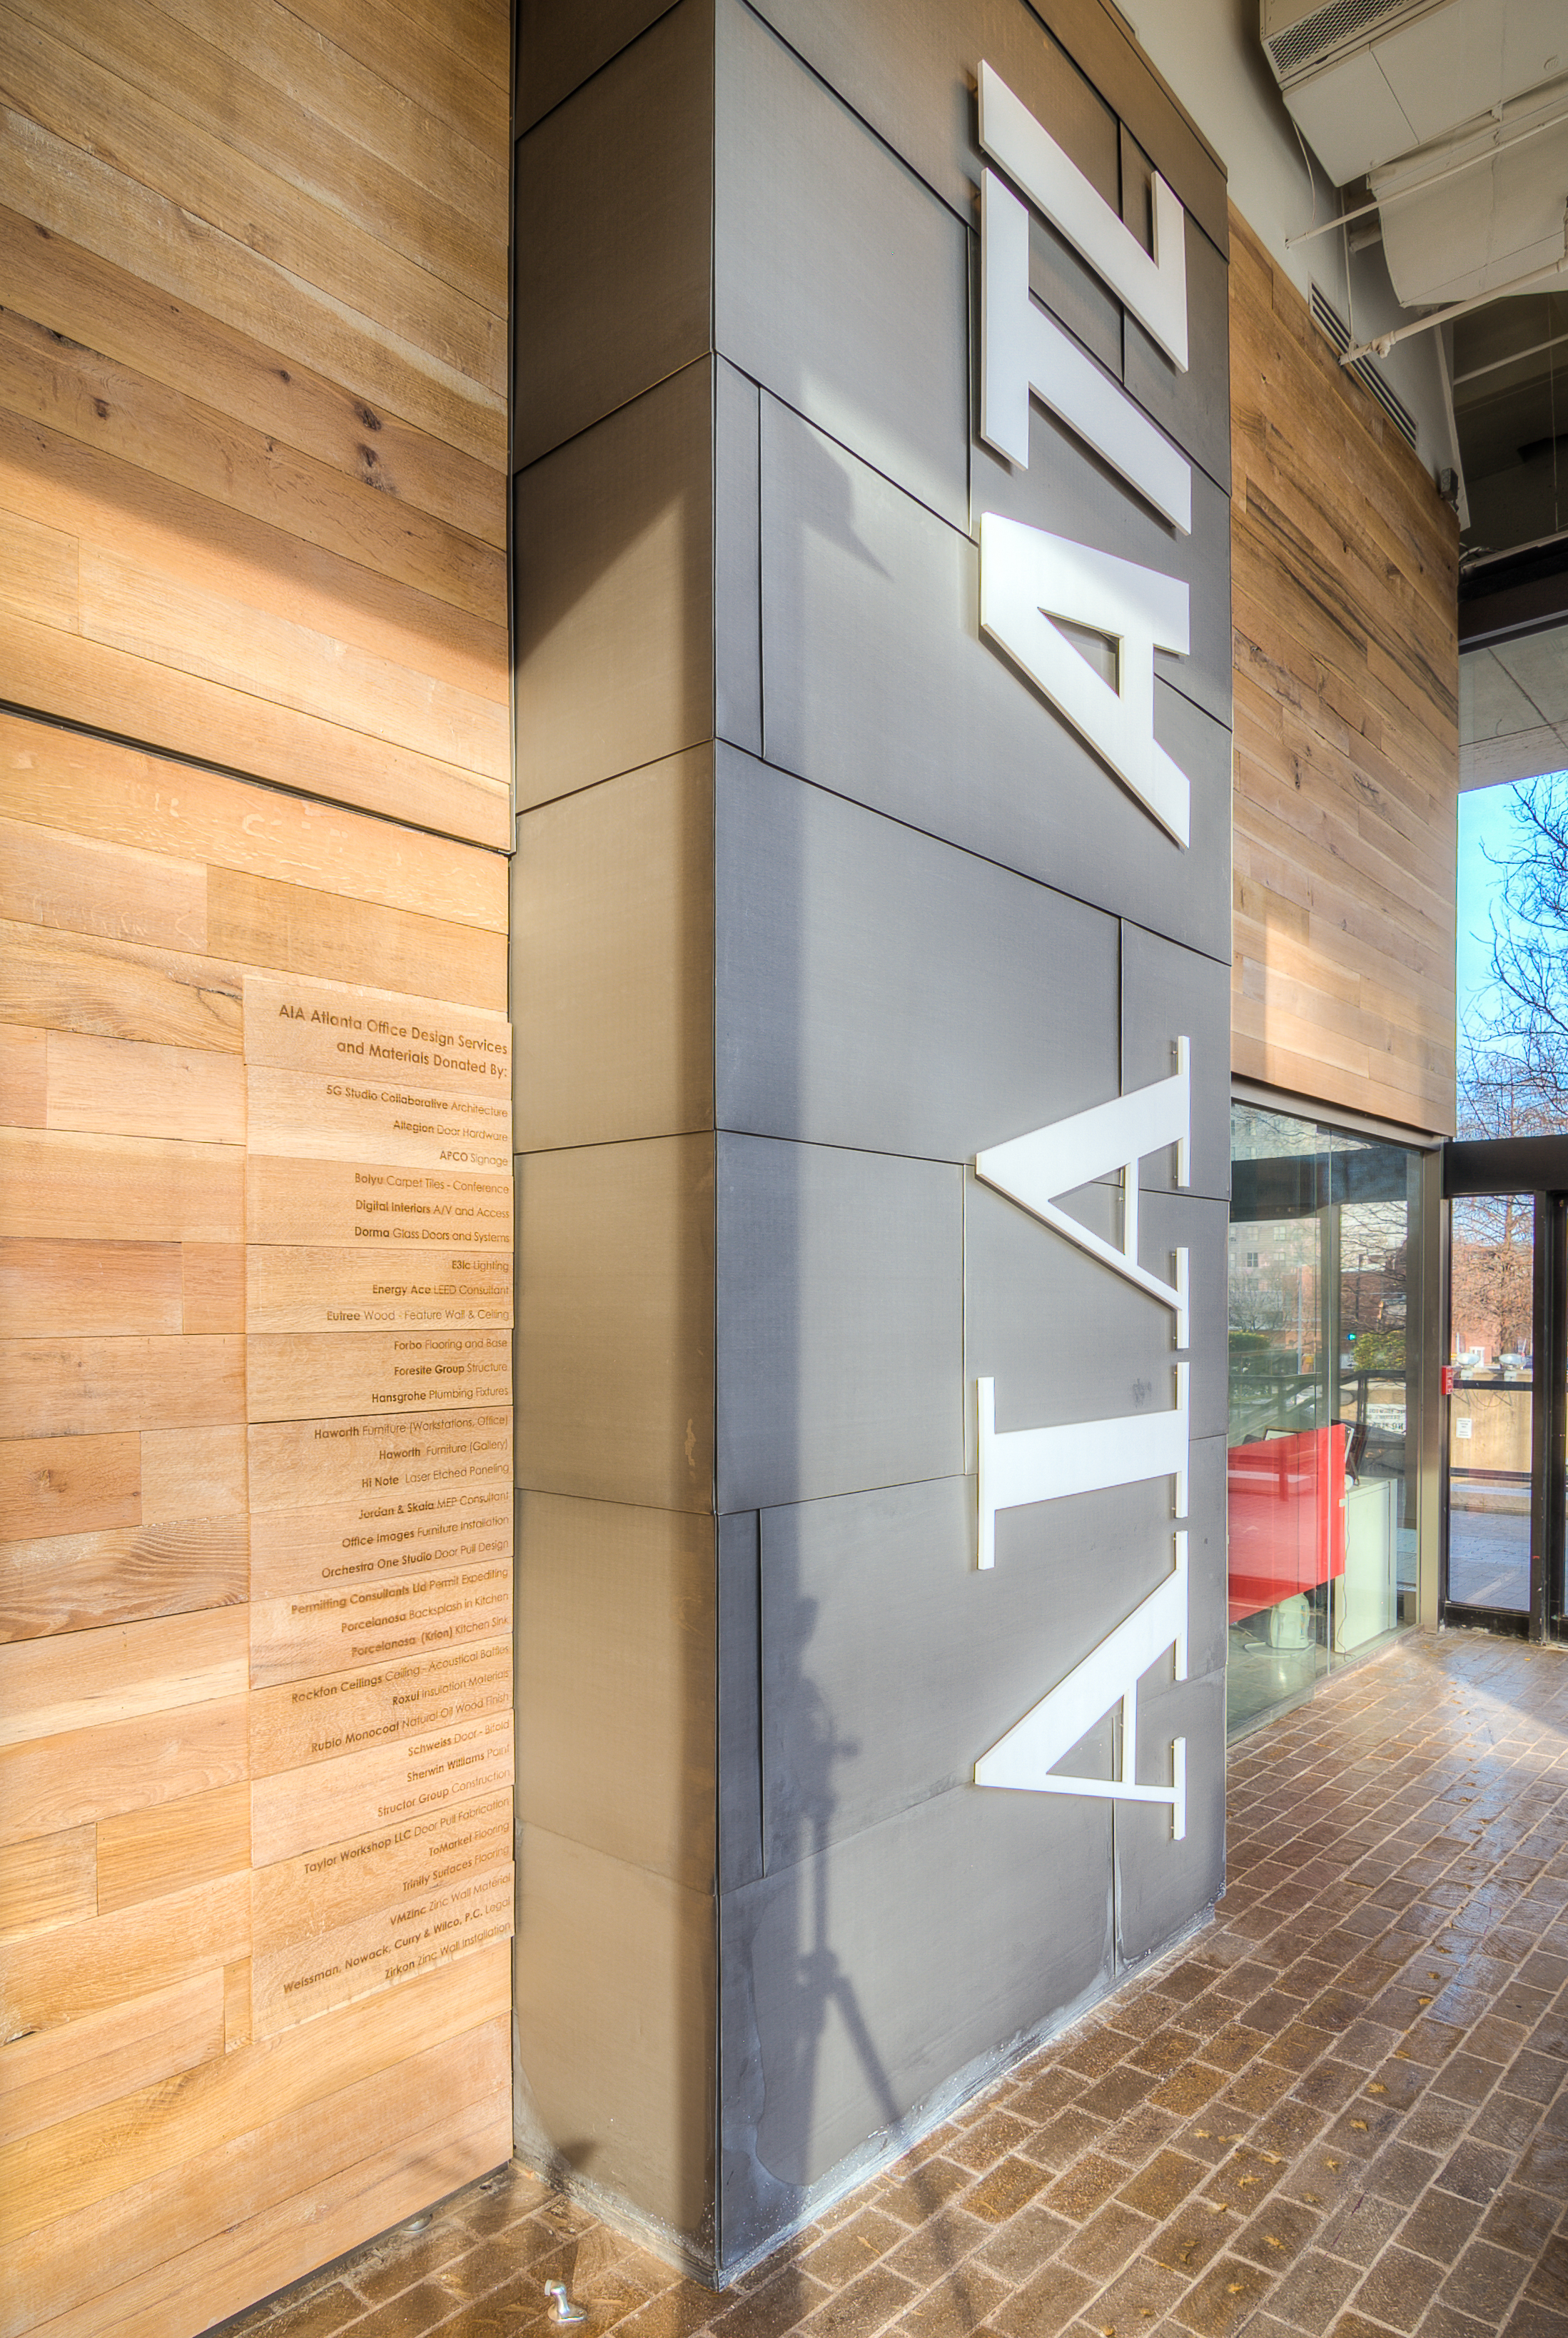 AIA Eutree Forest Free white oak wood paneling feature accent wall and ceiling